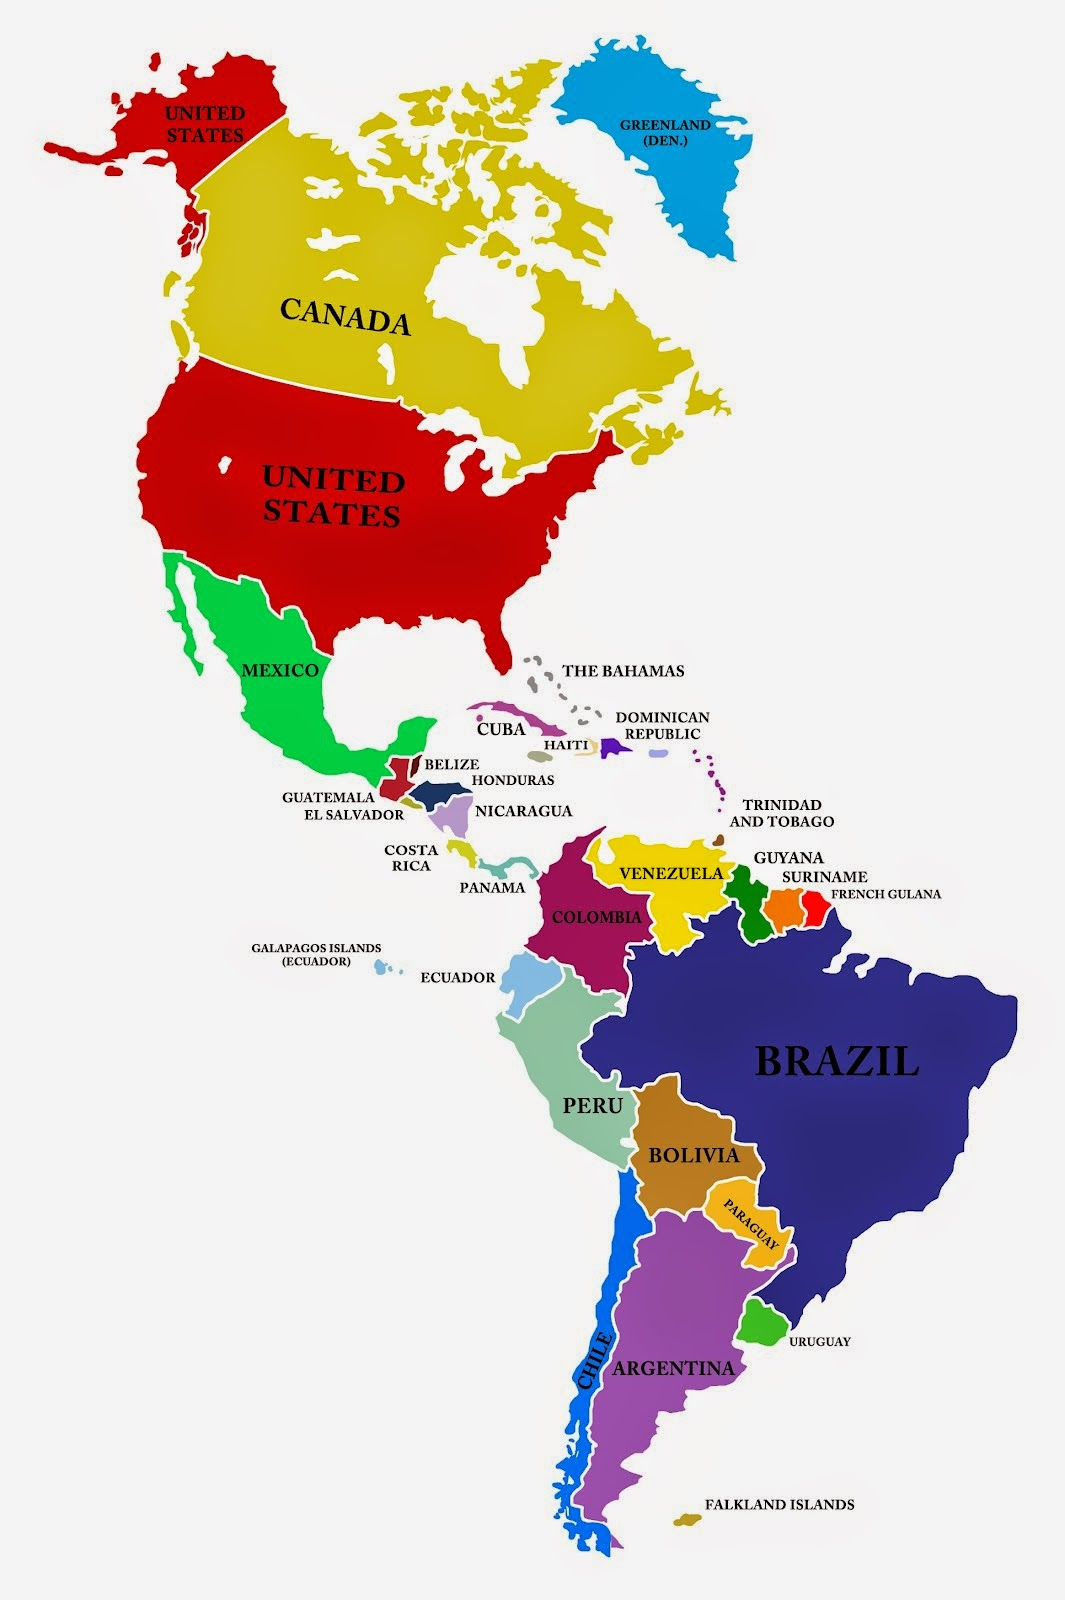 SCIENCE AT SCHOOL GEOGRAPHY TH GRADE - Mapa politico de america central juego